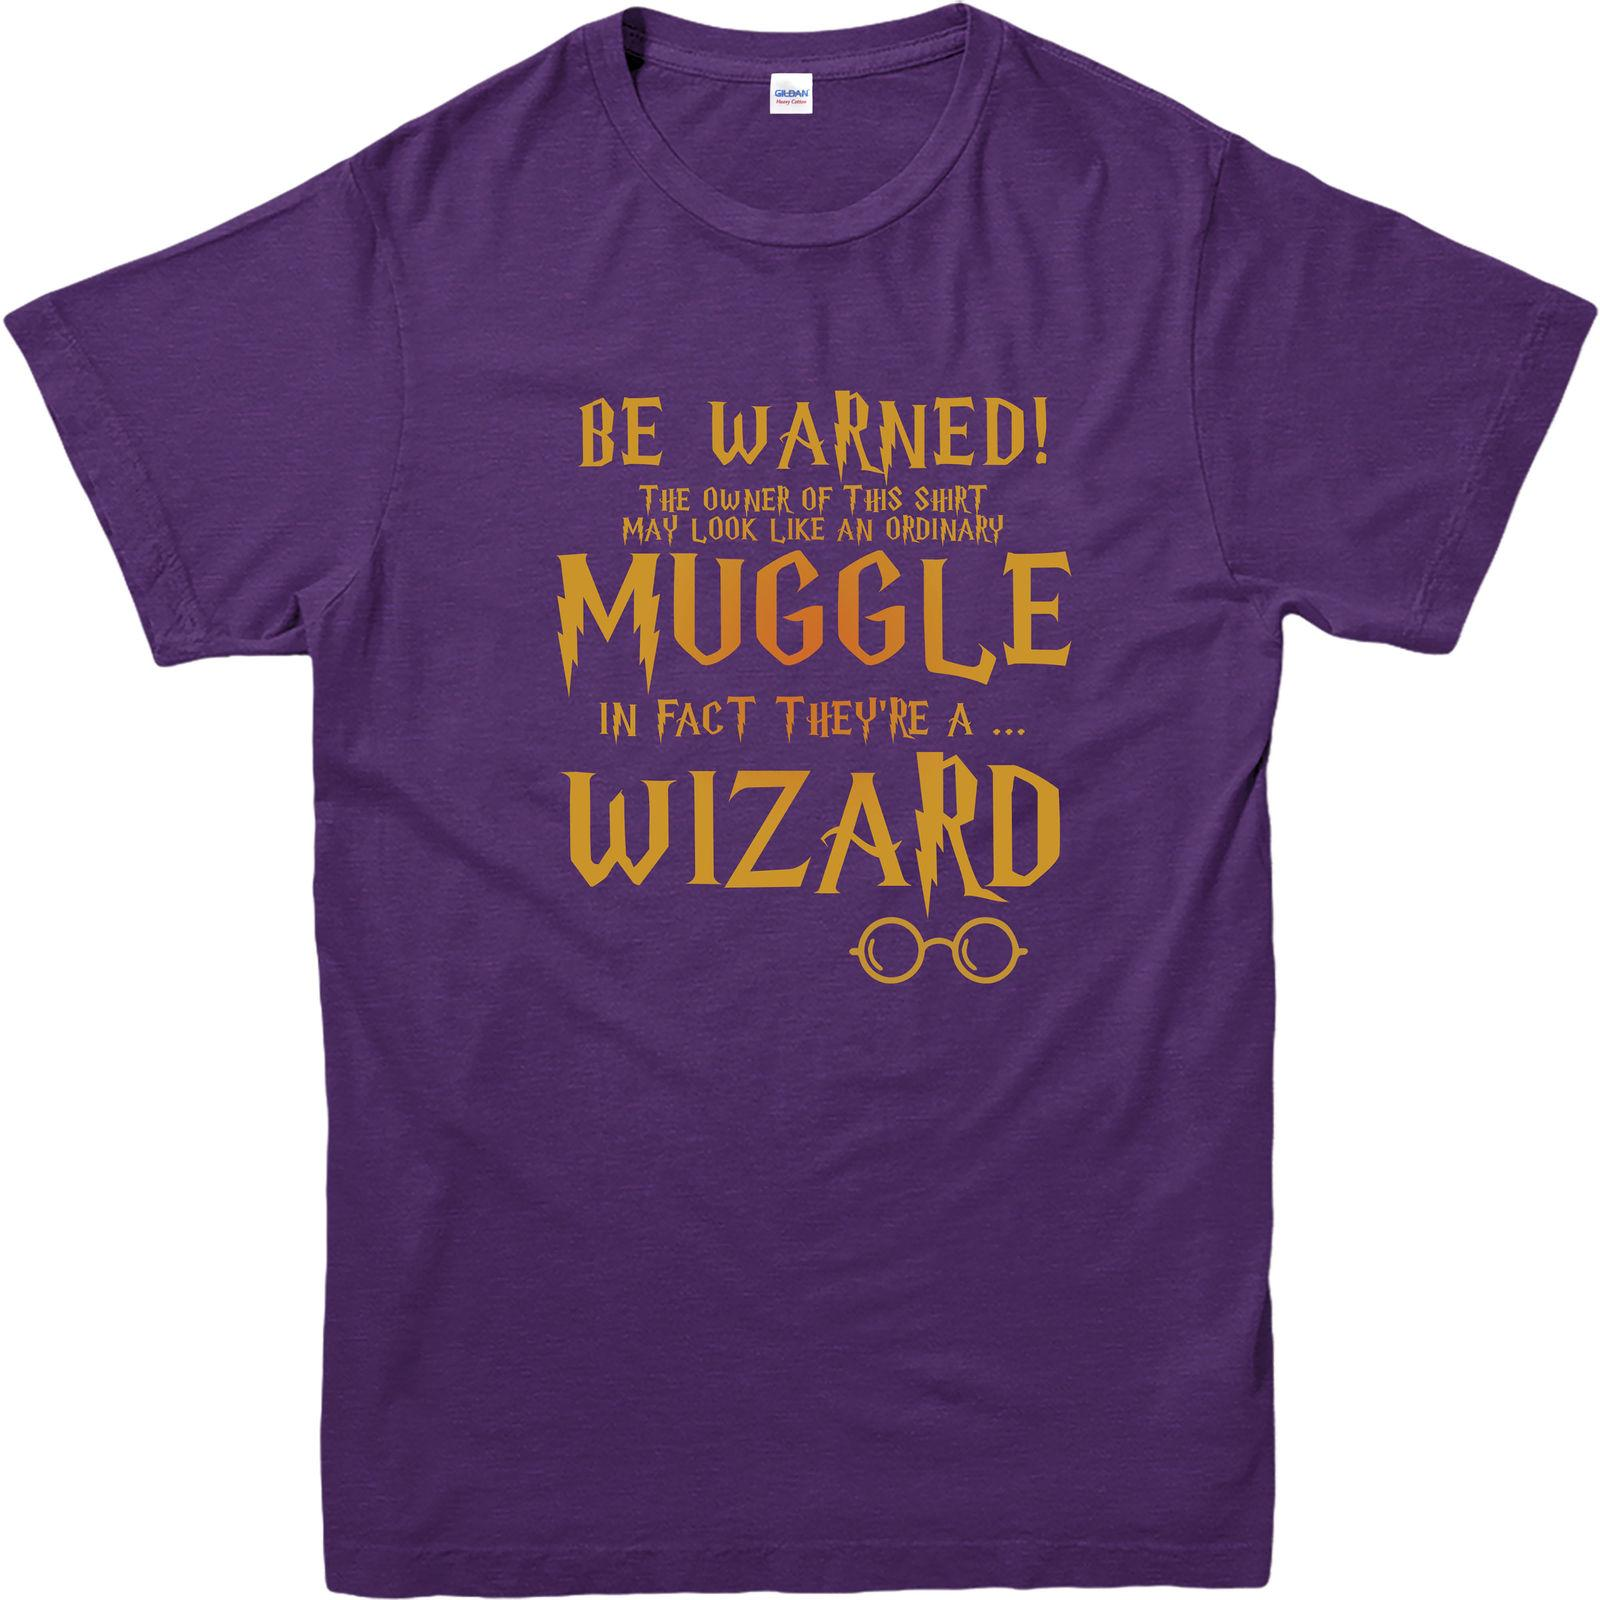 47d02abc Harry Potter T Shirt, Muggle T Shirt, Wizard Top. Harry Potter Fancy Dress  Funny Unisex Casual Tee Gift Shirt Shirt Novelty Tee Shirts From  Apparelconnect, ...